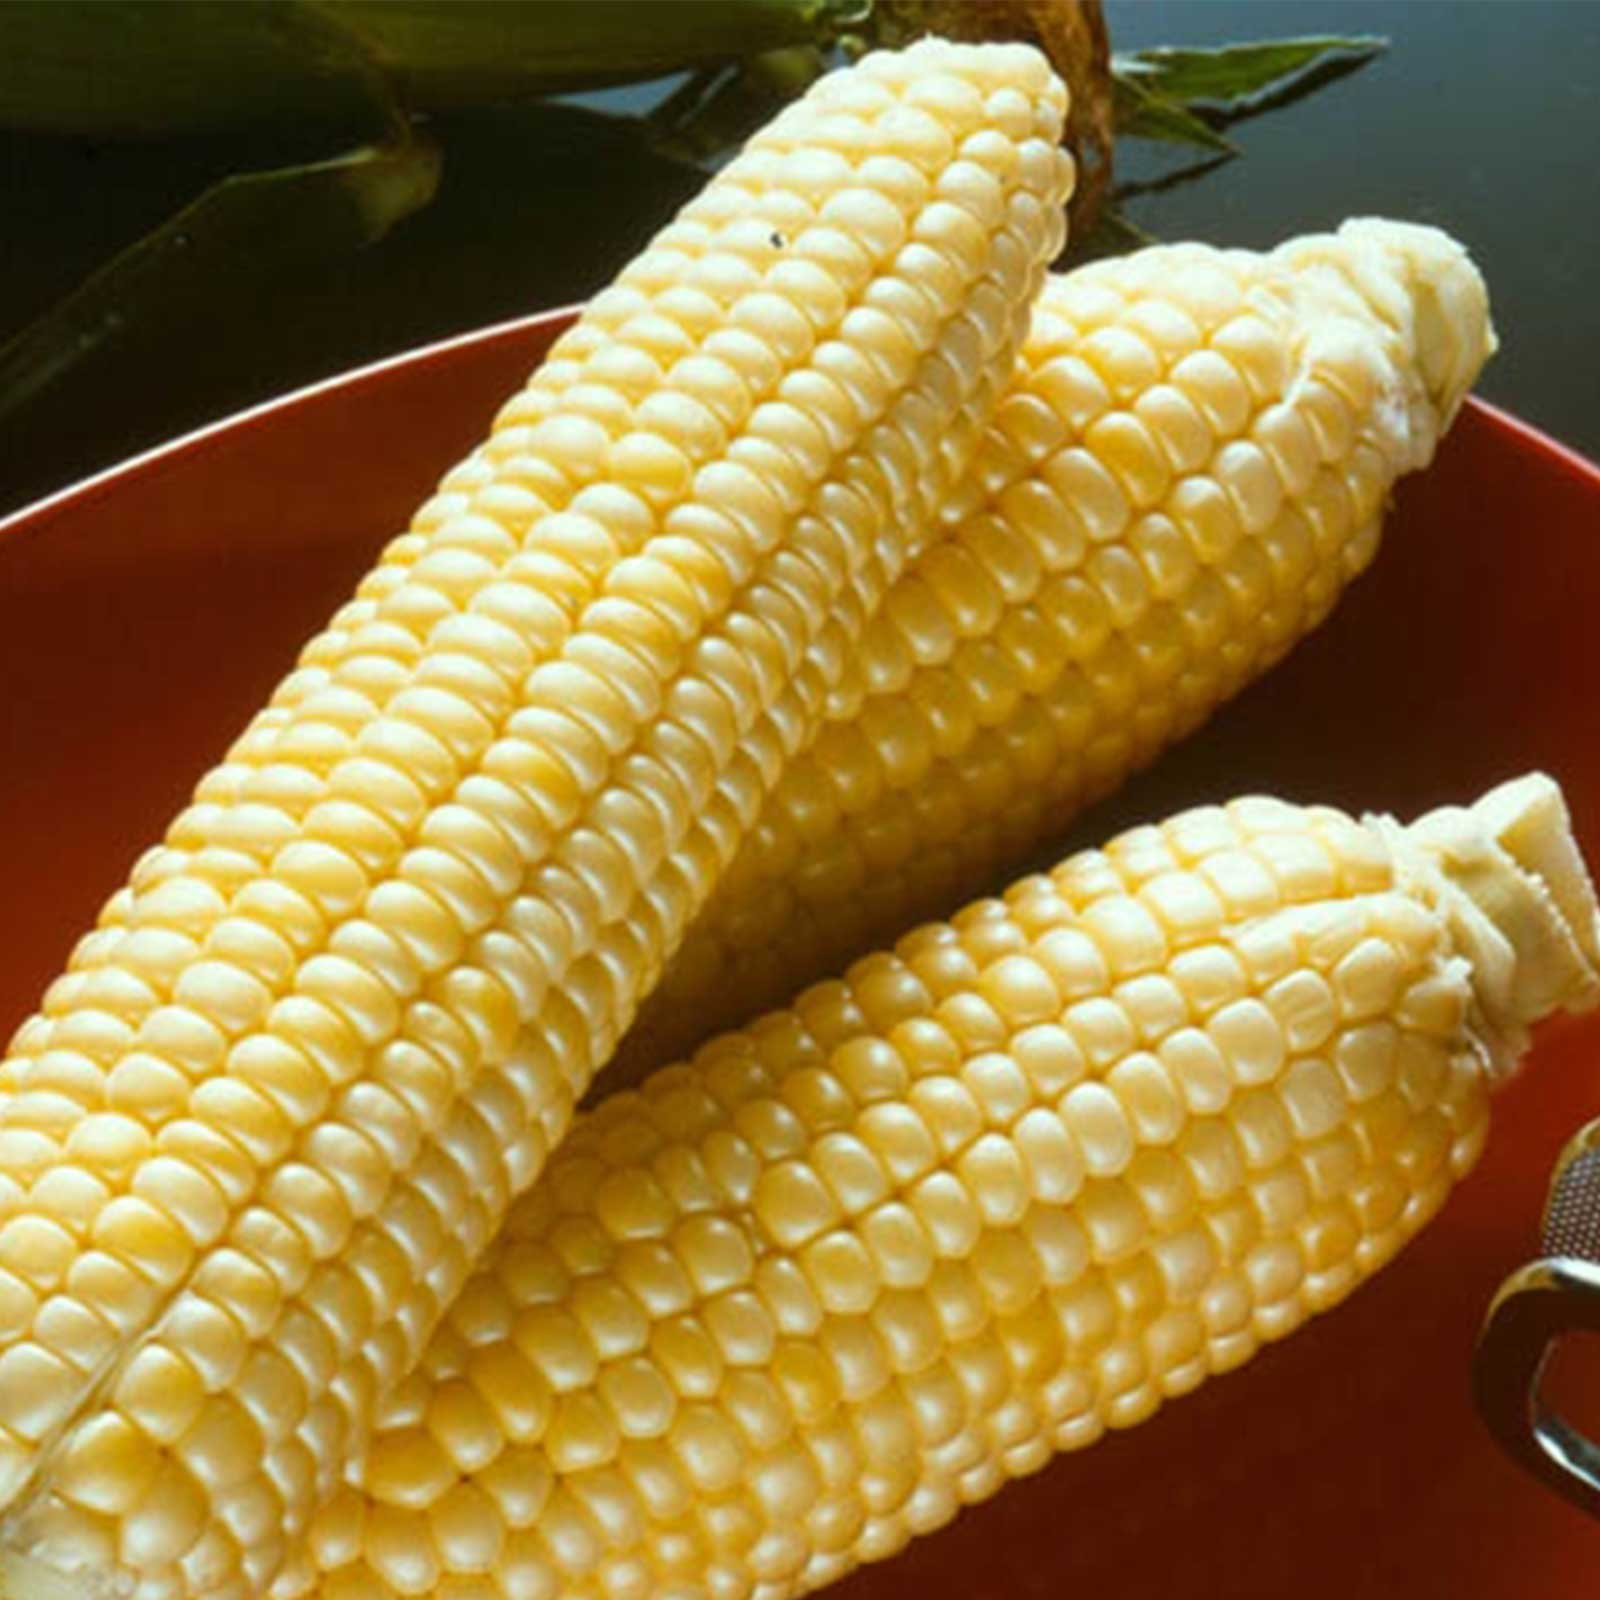 Sugar Buns Hybrid Corn Garden Seed - 5 Lb - Non-GMO, Sugary Enhanced (SE), Vegetable Gardening Seeds - Yellow Sweet Corn by Mountain Valley Seed Company (Image #1)